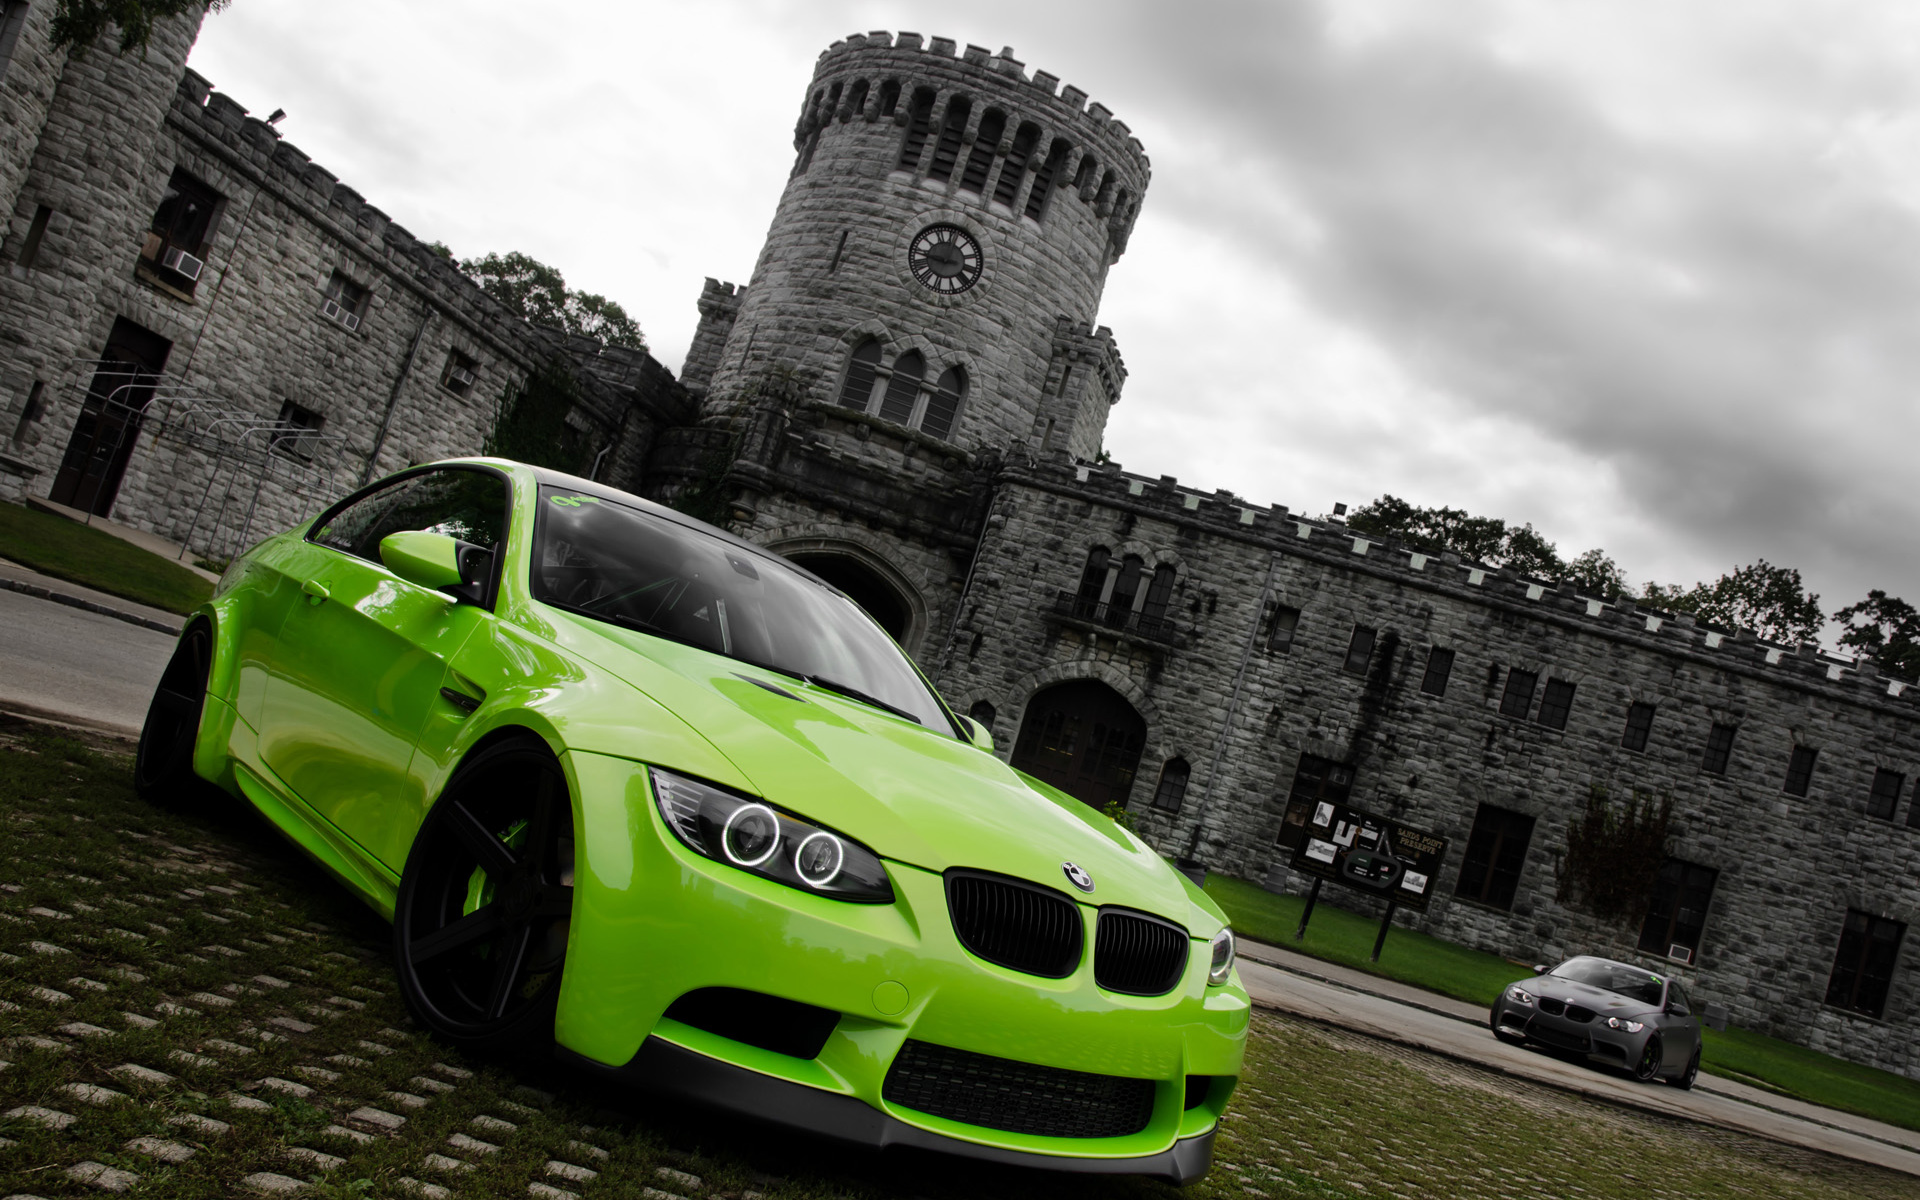 Car Wallpapers Backgrounds Hd: Green BMW M3 Wallpaper